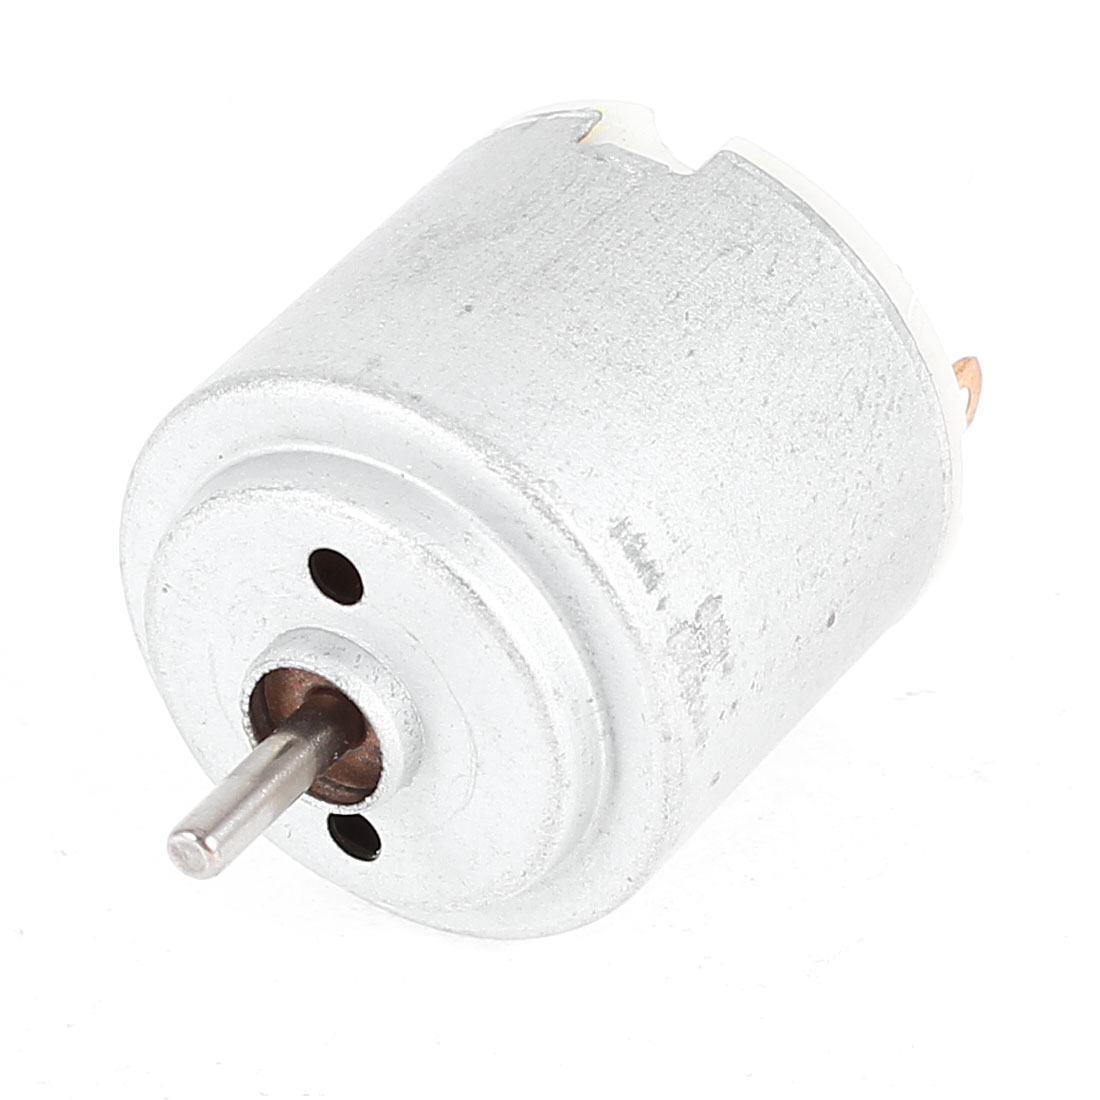 DC 3V 8000RPM 2 Pole Connector Motor for DIY Toys Cars Hobbies